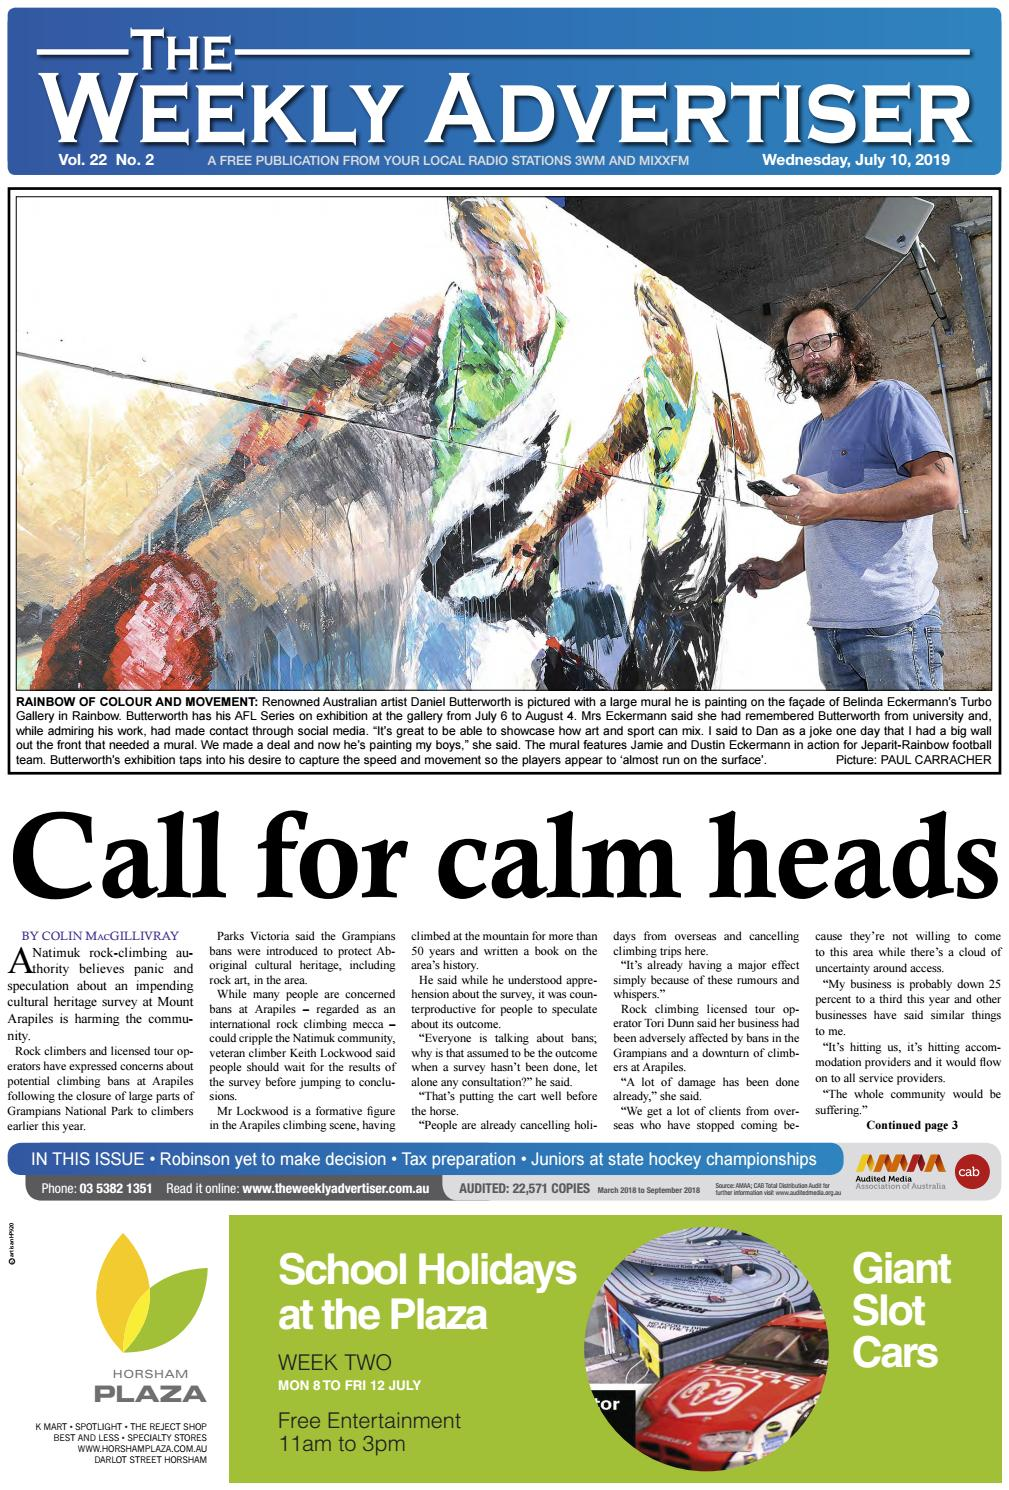 The Weekly Advertiser – Wednesday, July 10, 2019 by The